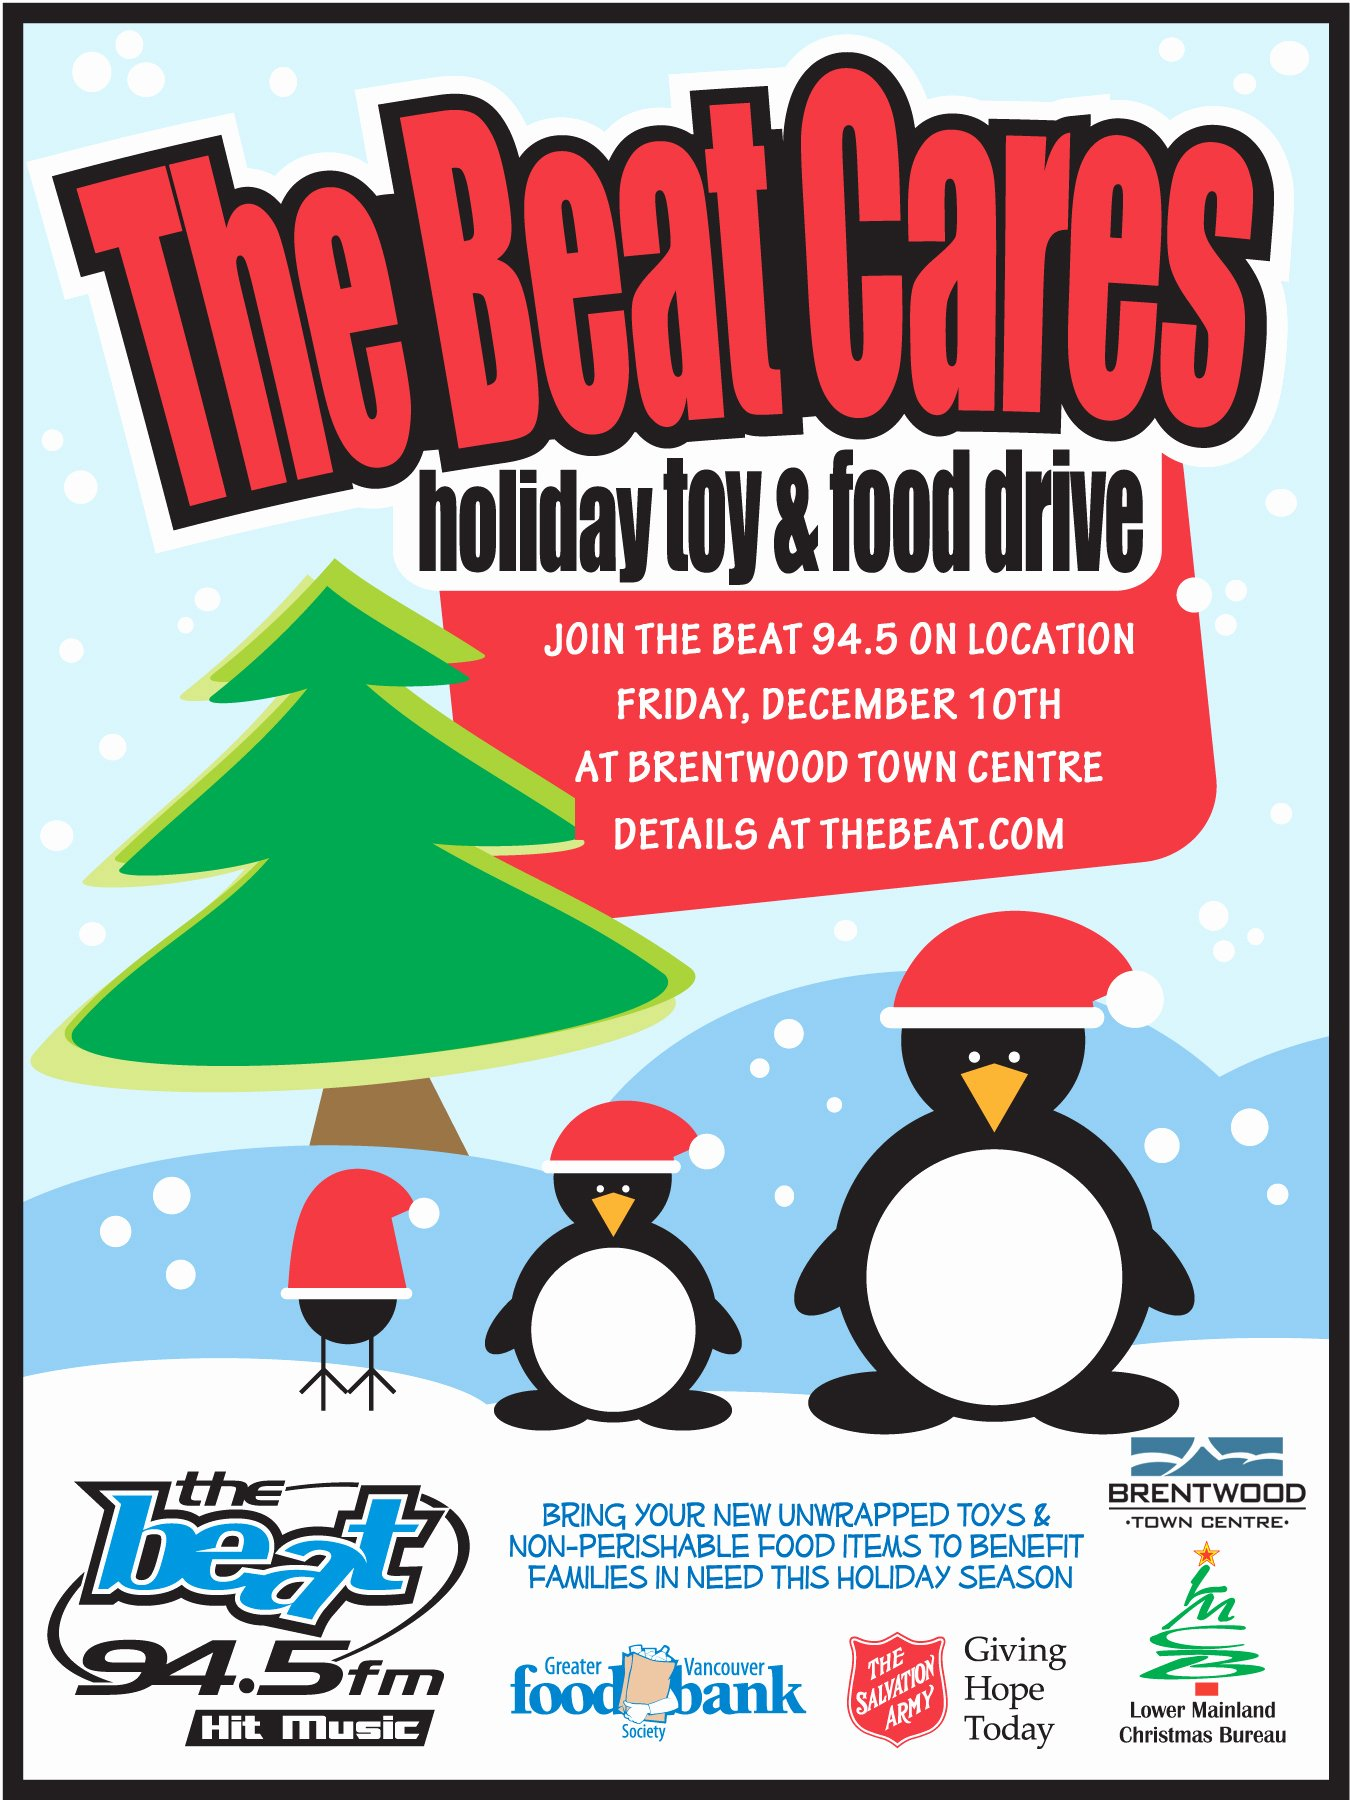 Canned Food Drive Flyer Inspirational the Beat Cares Holiday toy and Food Drive British Columbia Division